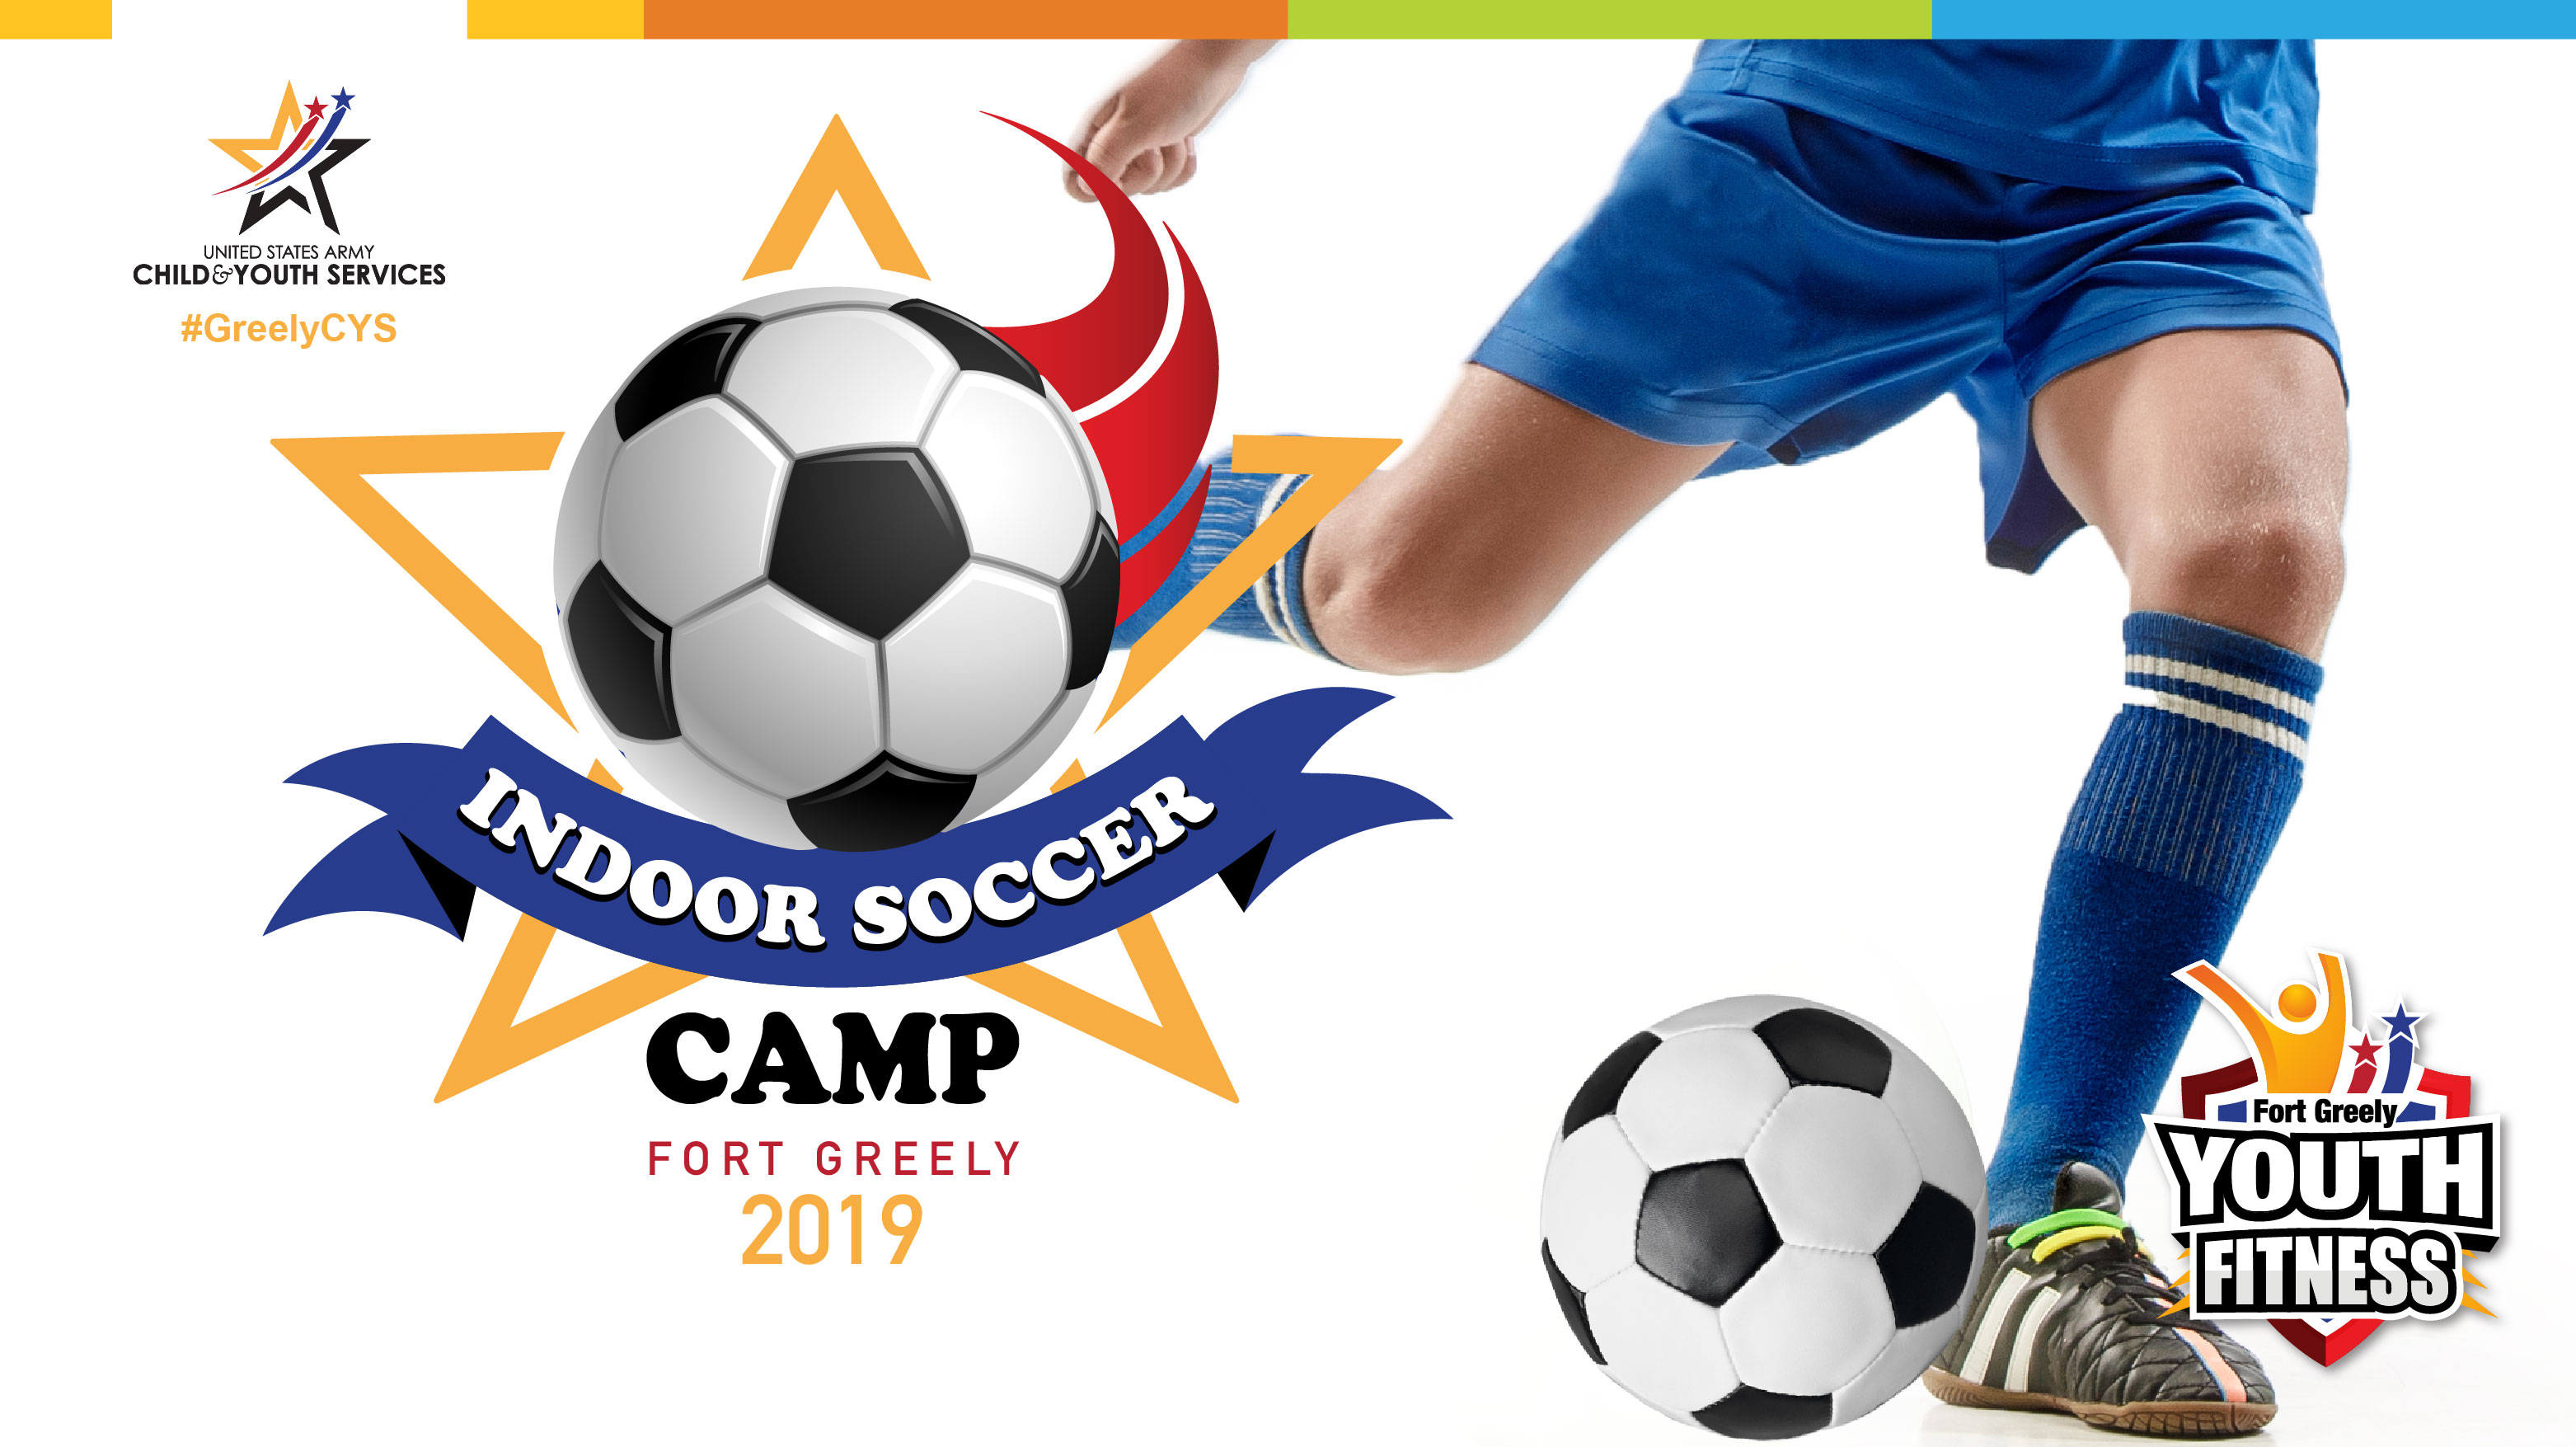 Indoor Soccer Camp